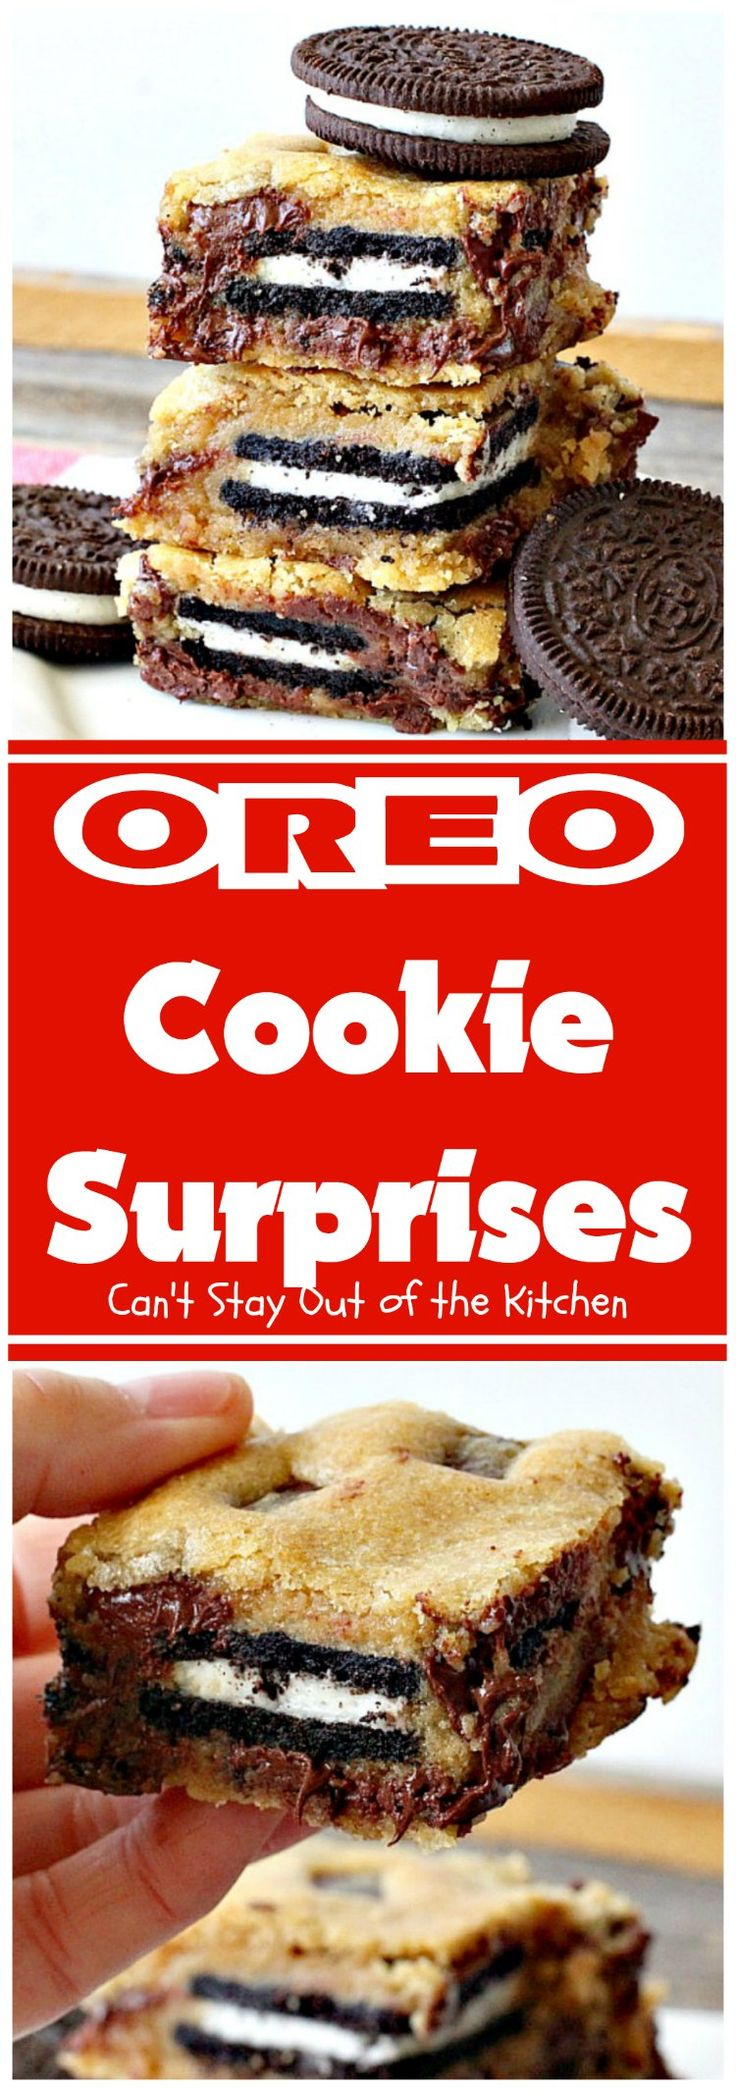 Oreo Cookie Surprises | These brownies are divine! Oreo cookies are sandwiched between#Mrs.Fields chocolate chip cookie dough! Best dessert ever! Great for Mothers Day & other holidays.